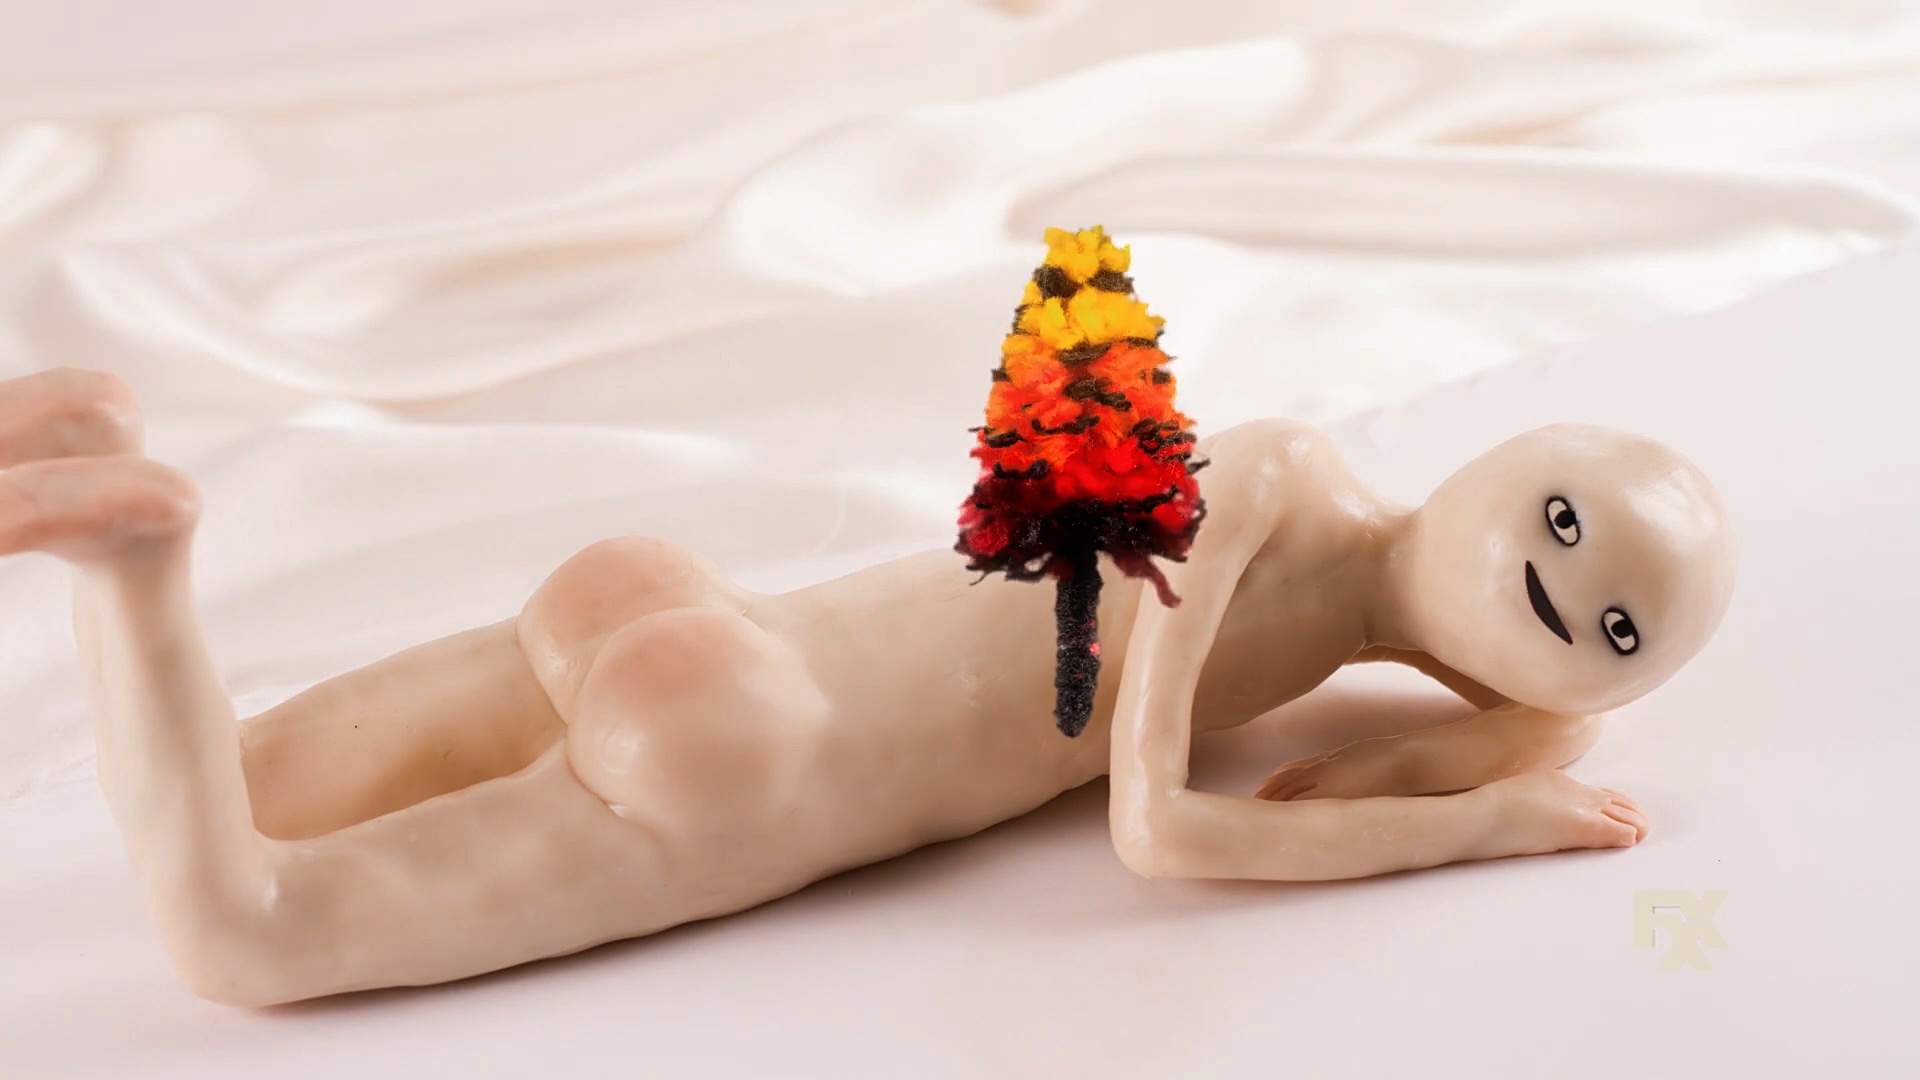 Viral video clip of naked humanoid with a bouquet of flowers